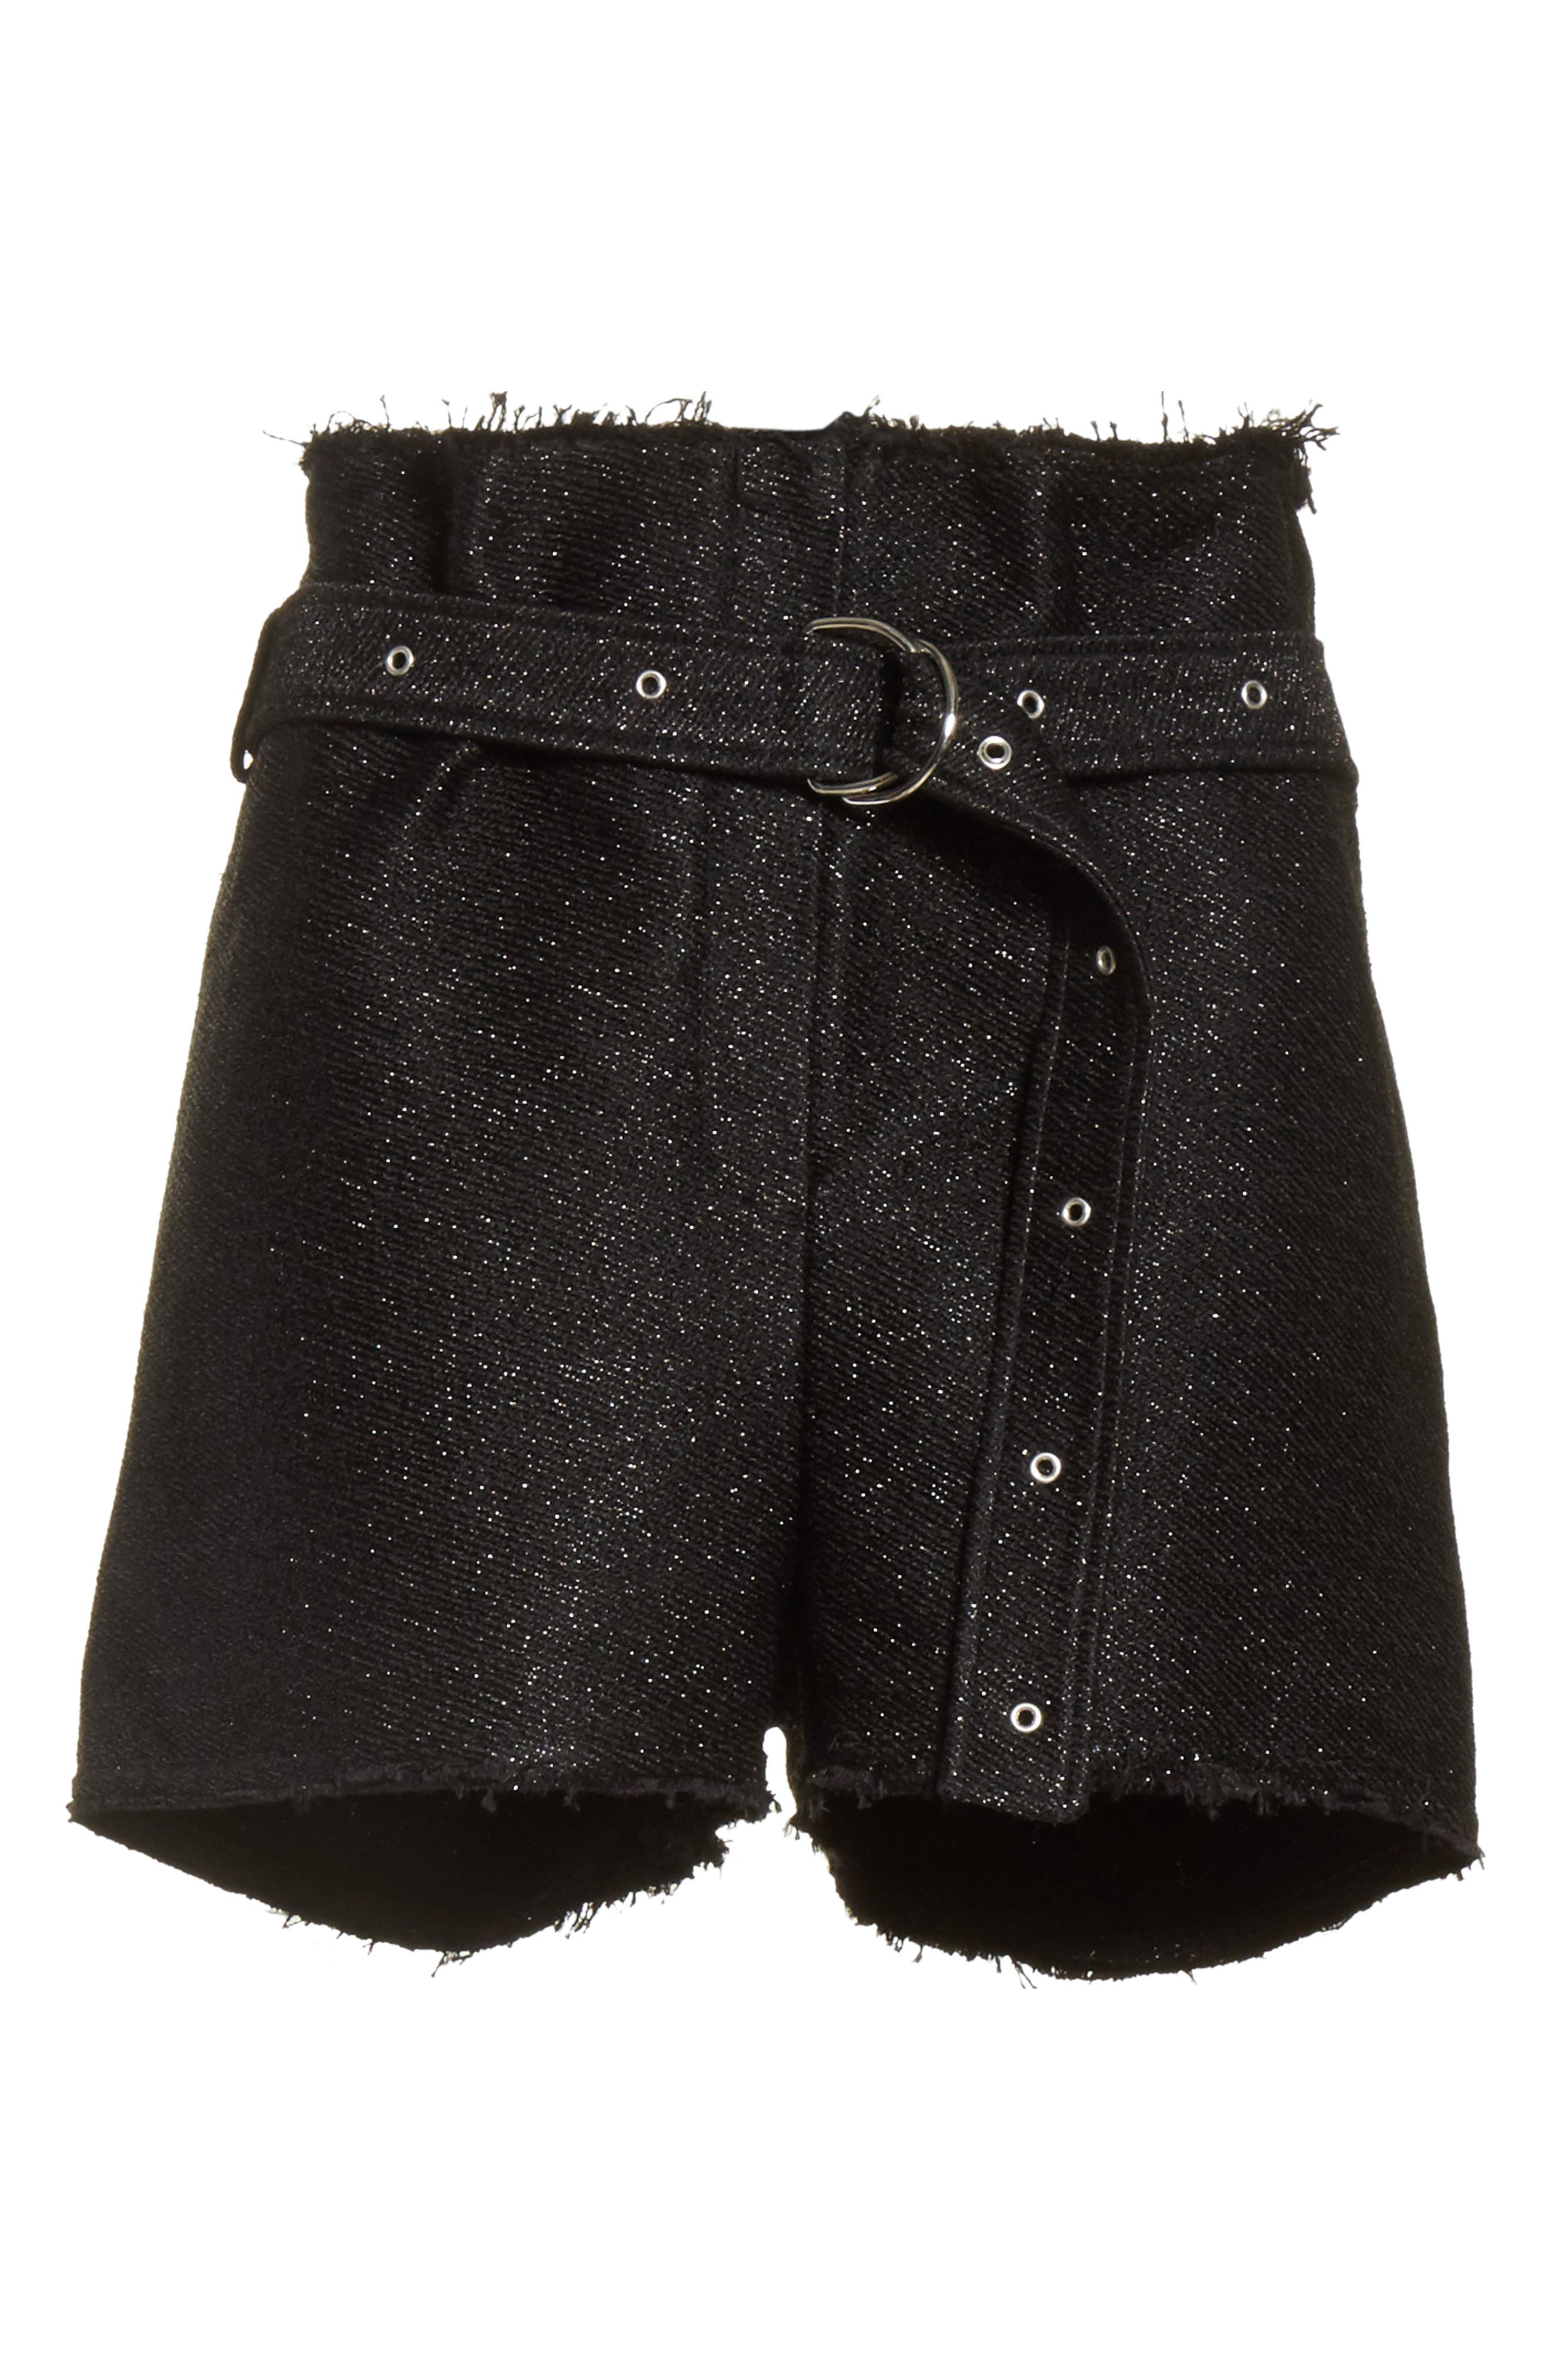 Chopan Belted Paper Bag Shorts,                             Alternate thumbnail 6, color,                             001